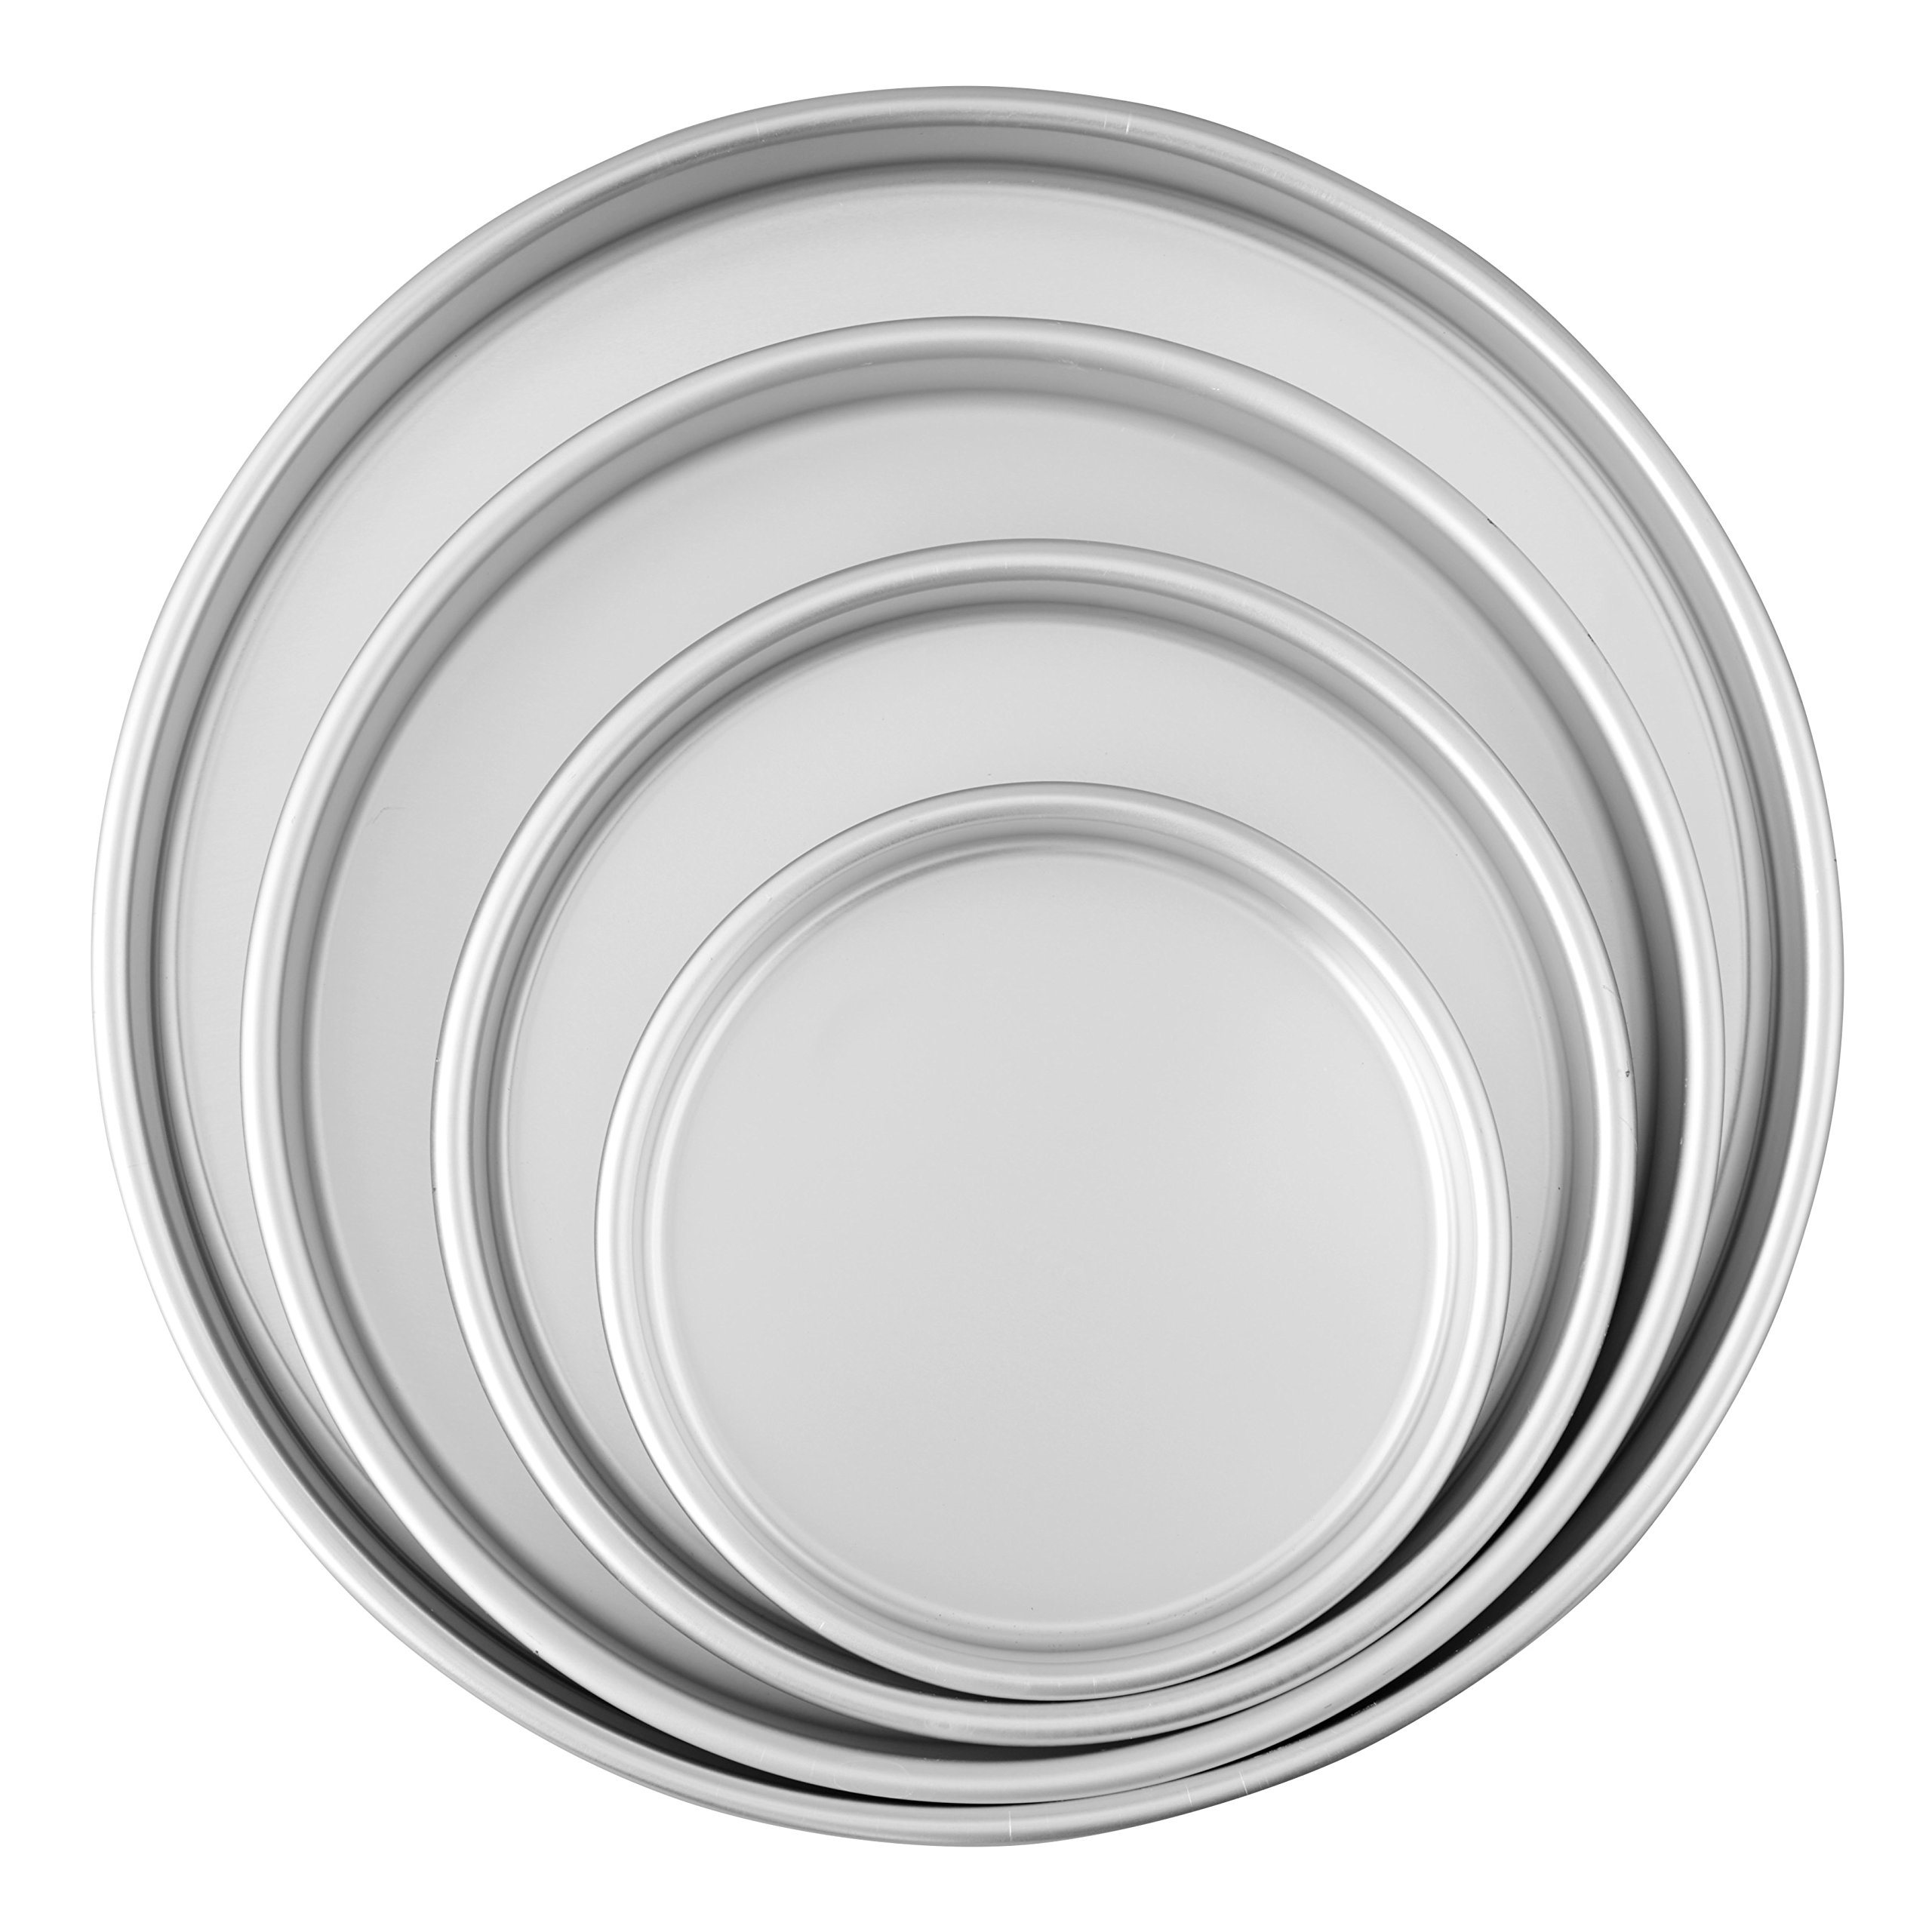 Wilton Round Cake Pans, 4 Piece Set for 6-Inch, 8-Inch, 10-Inch and 12-Inch Cakes by Wilton